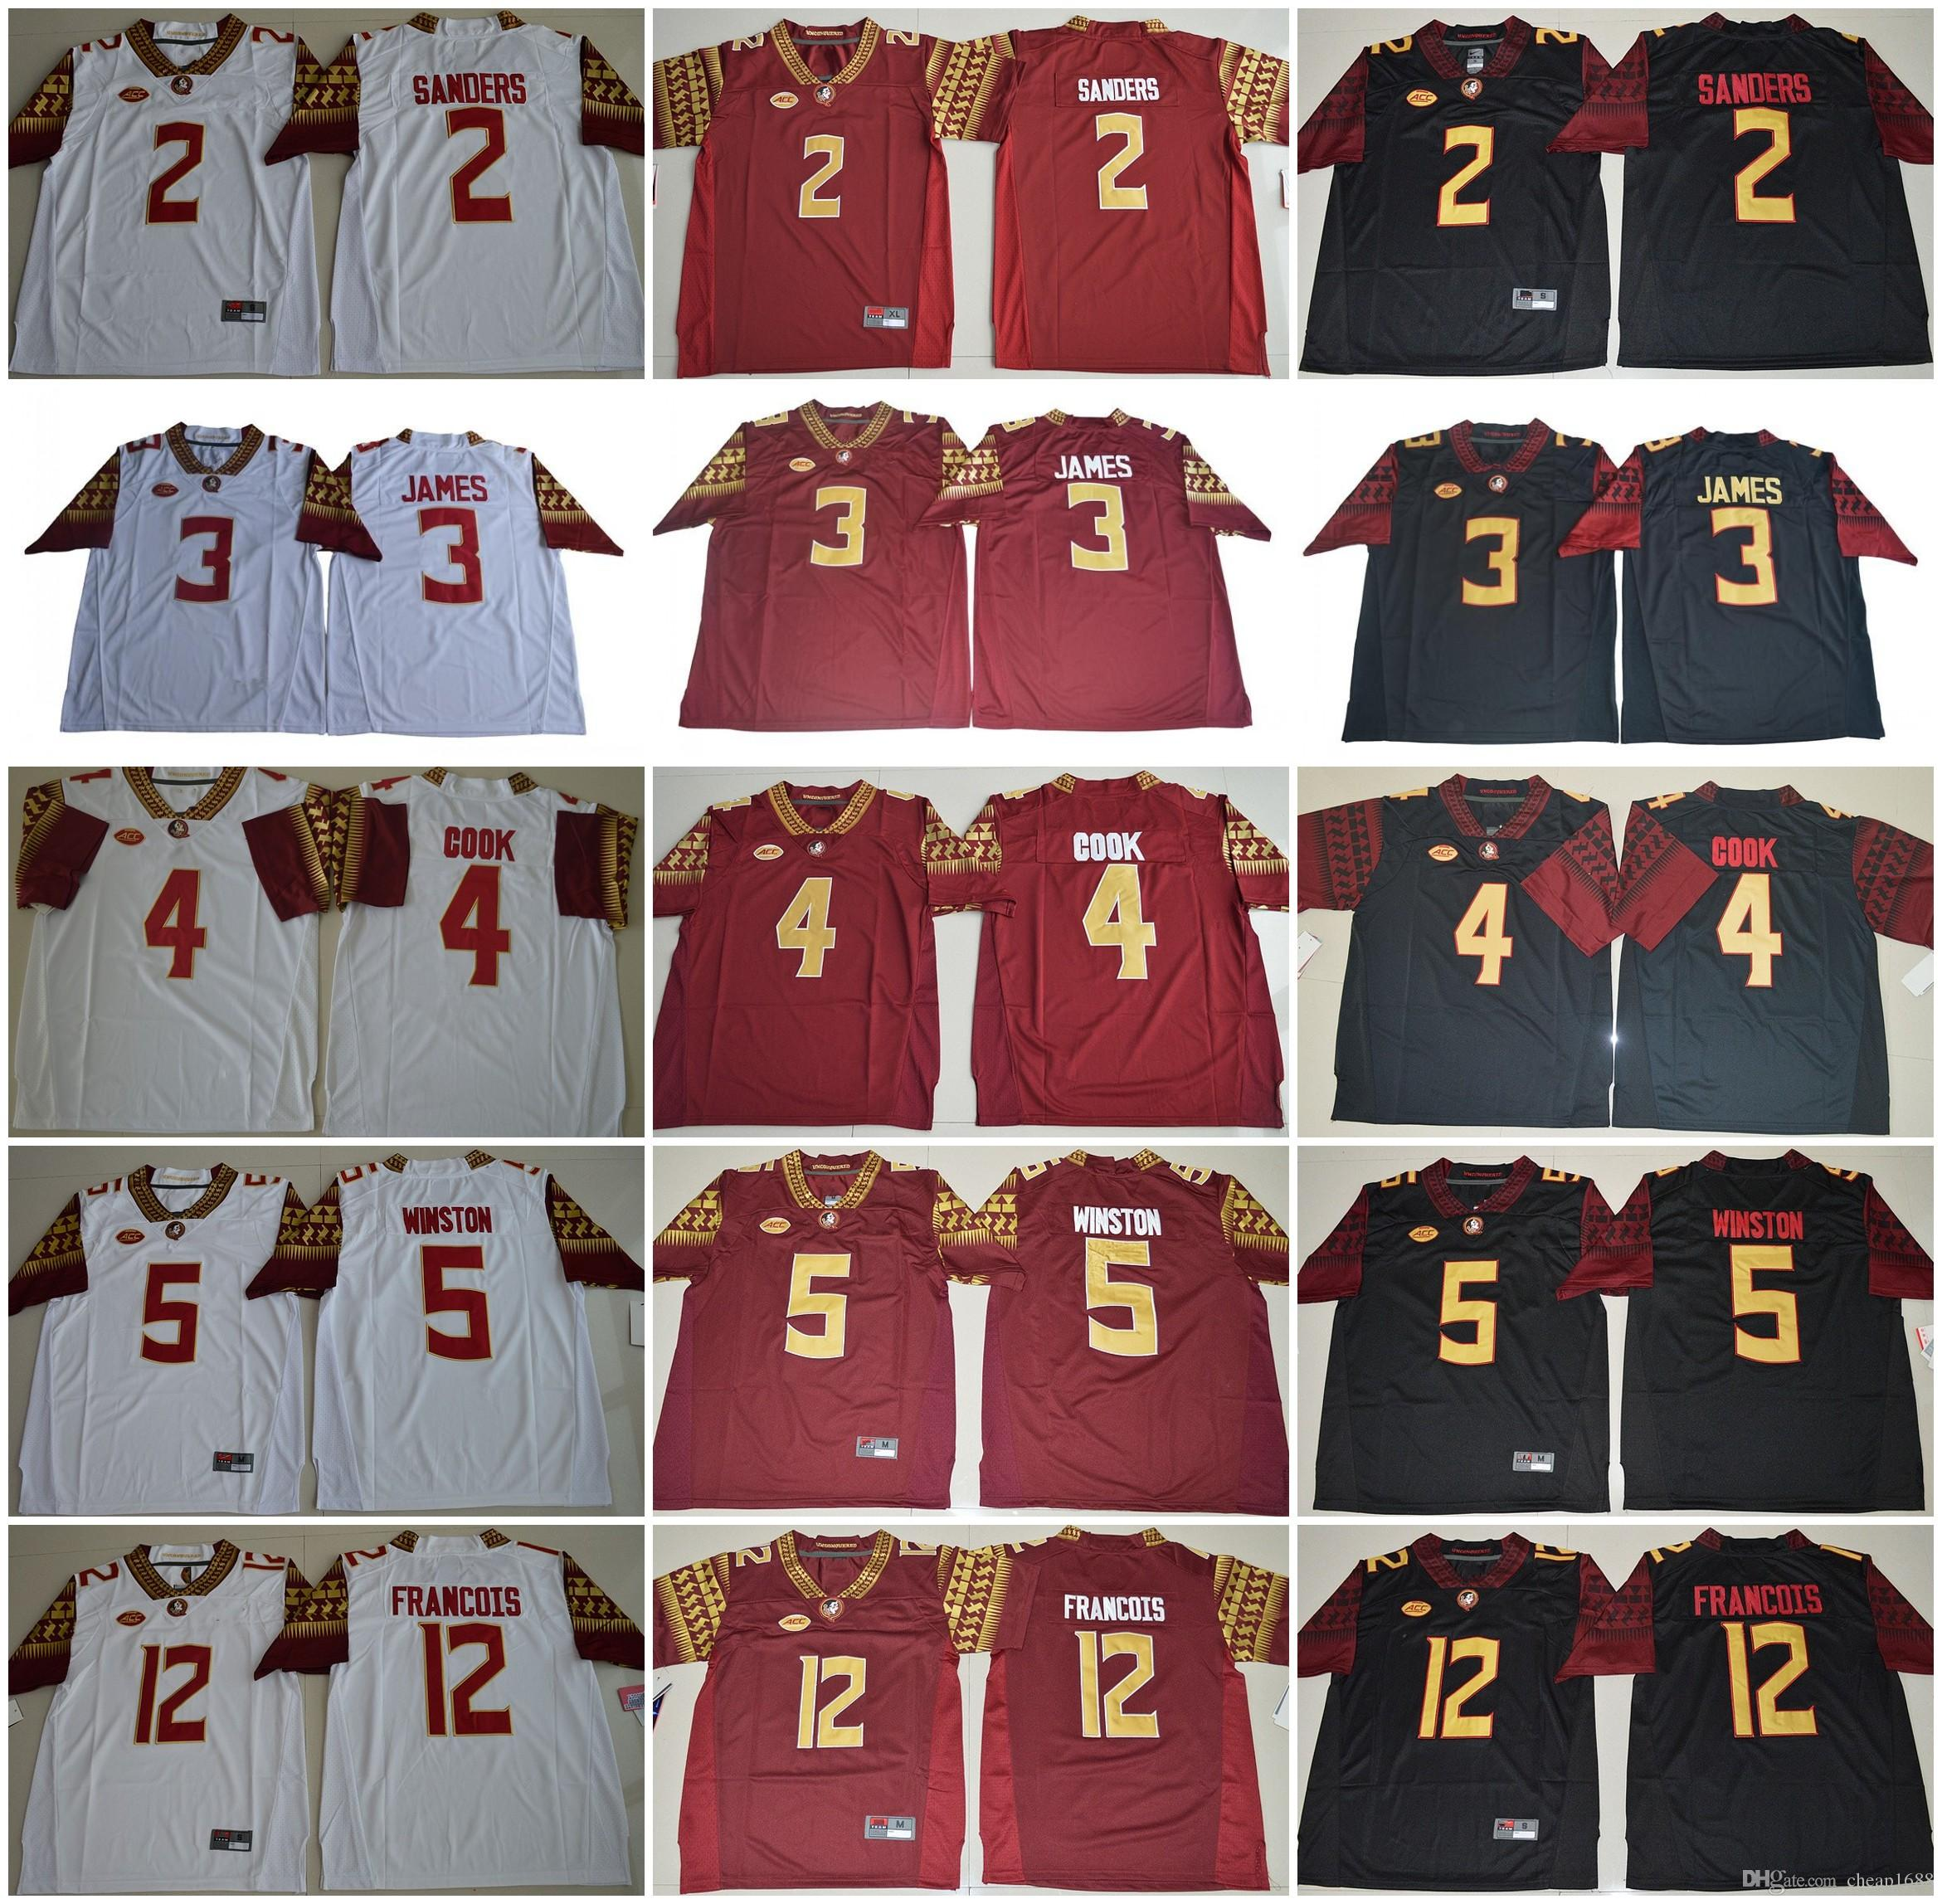 mens acc fsu florida state seminoles ncaa college football jerseys 2 deion sanders 3 james 4 cook 5